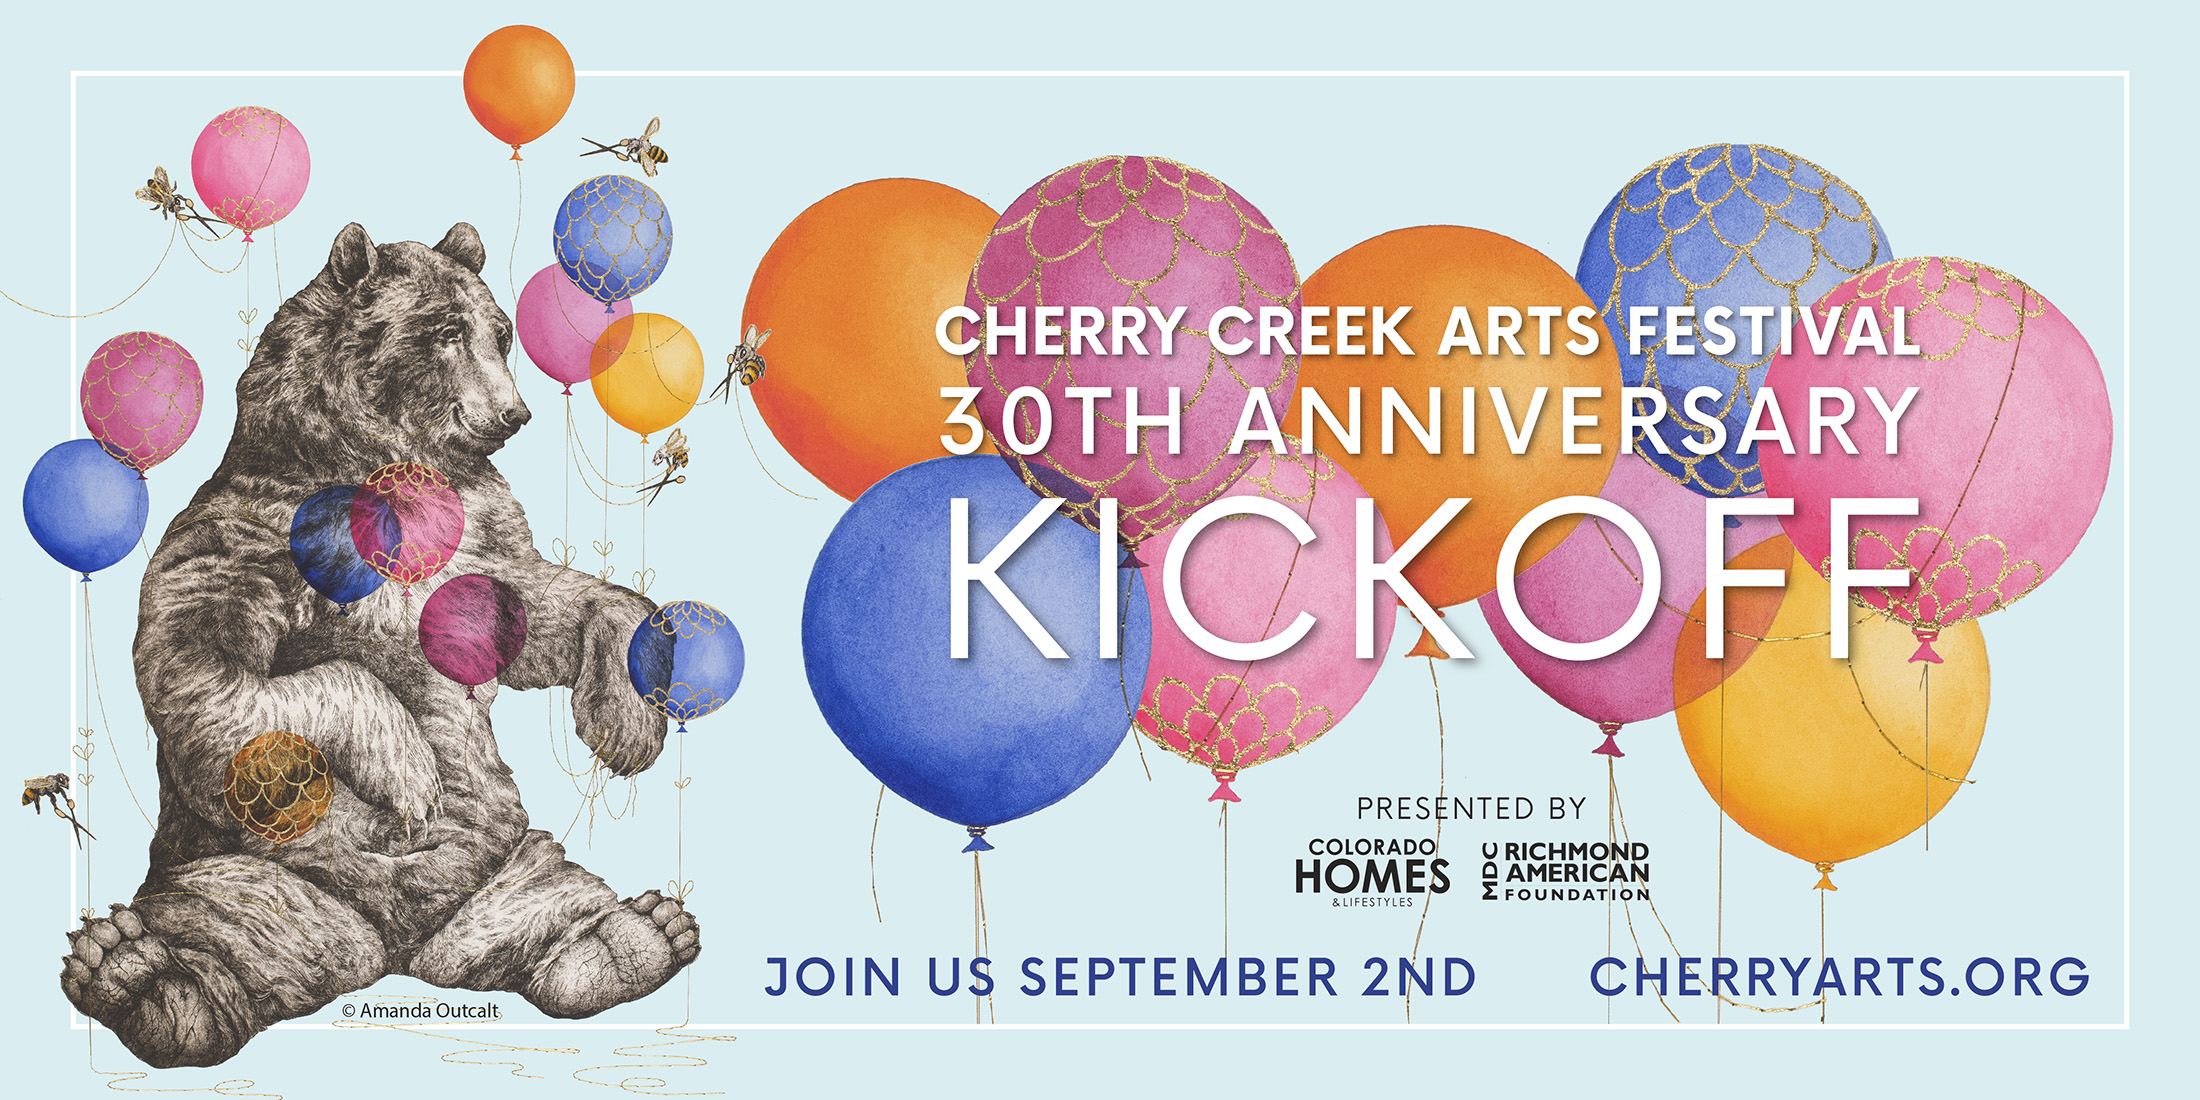 Cherry Creek Arts Festival 30th Anniversary Kickoff - Join us September 2nd